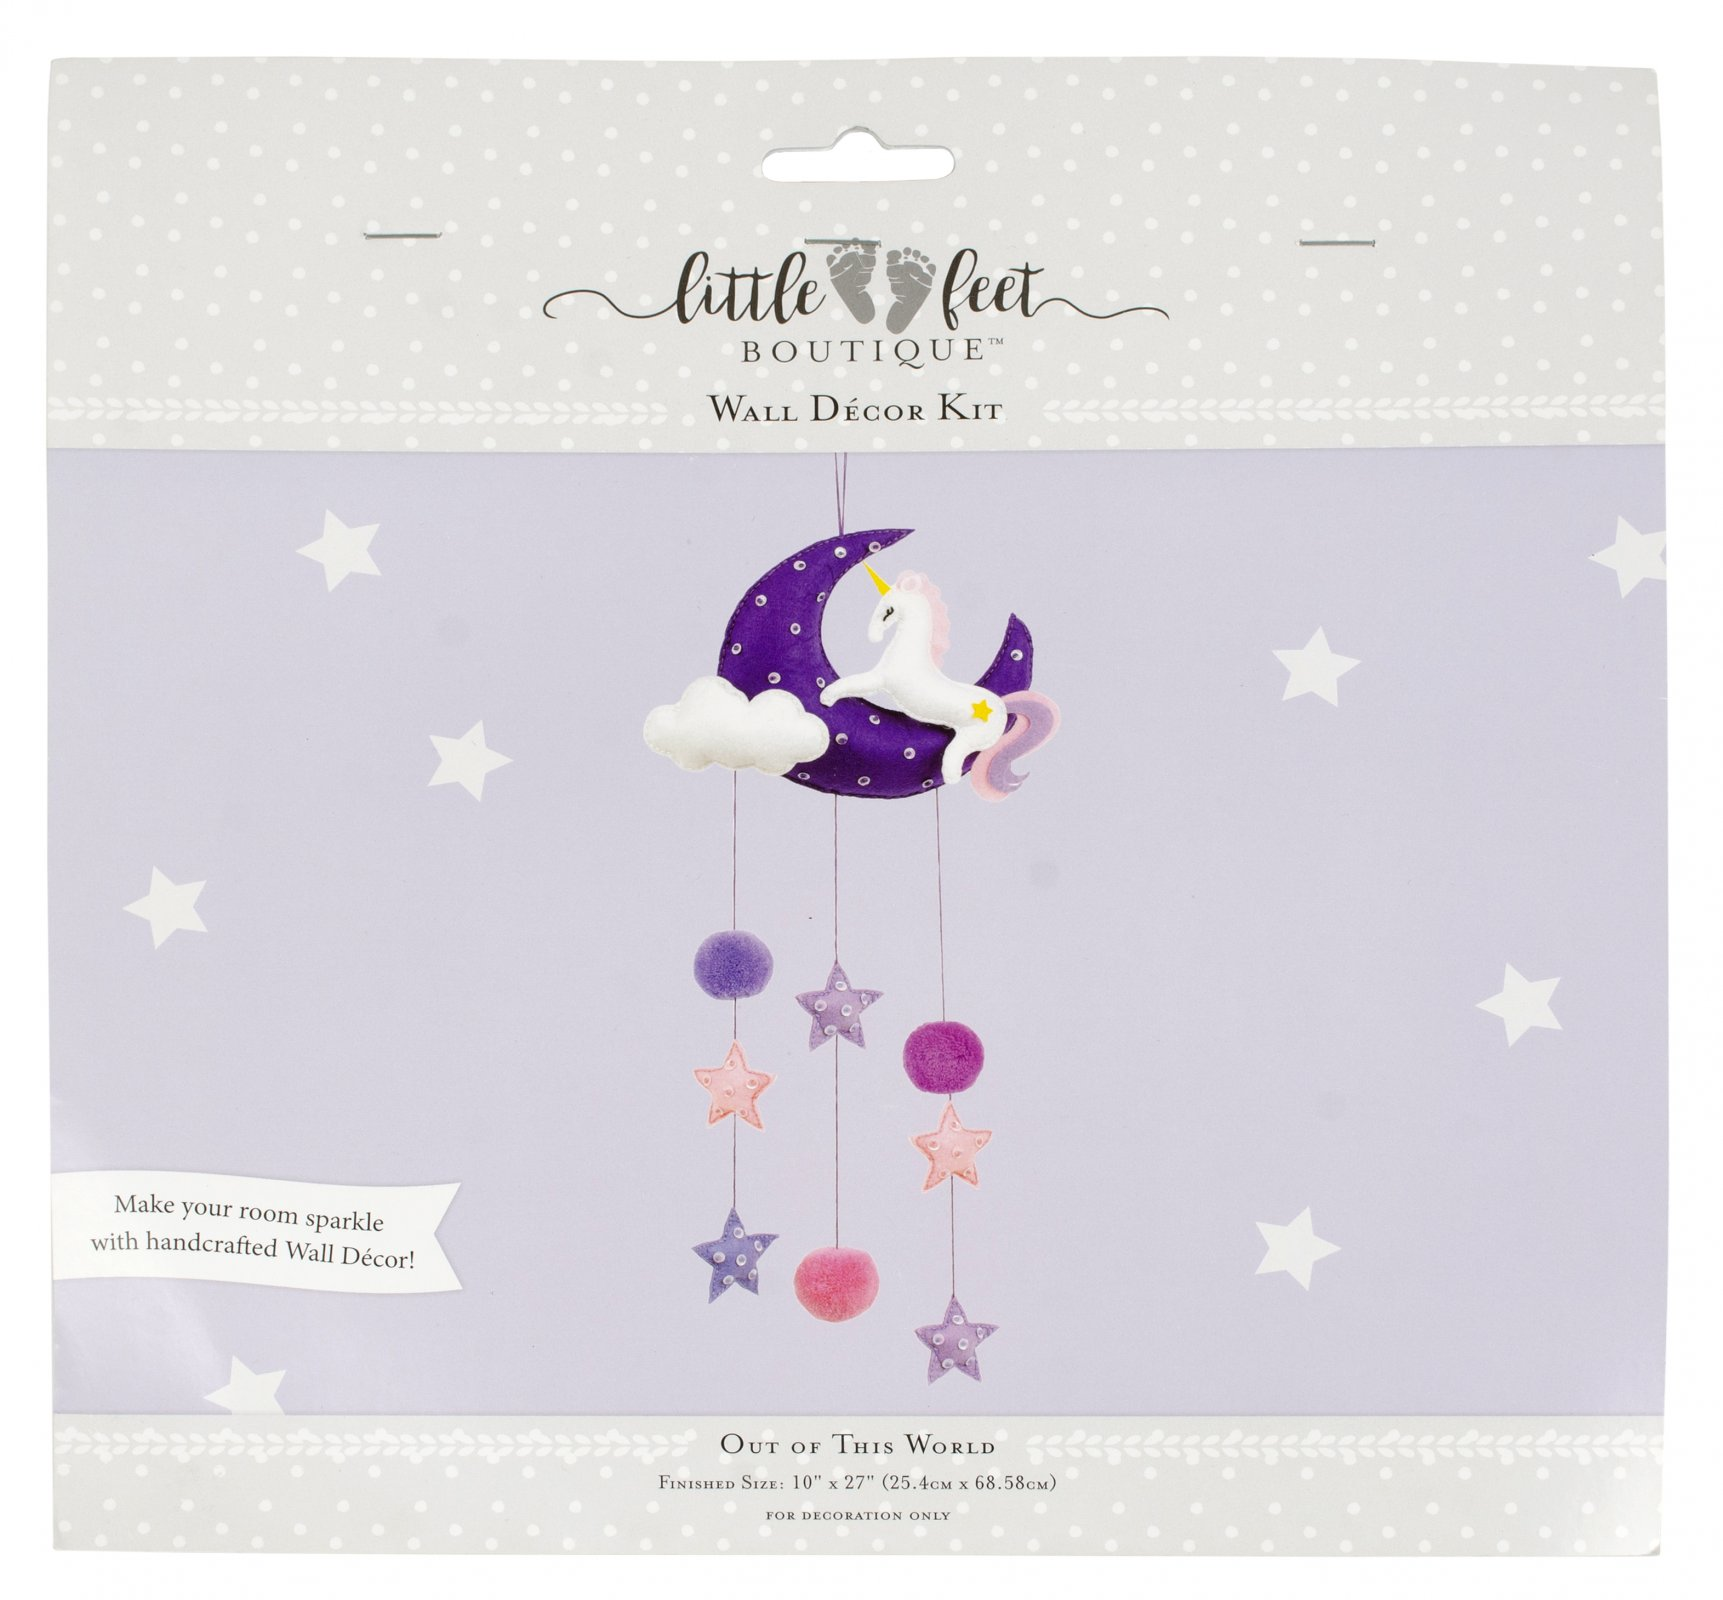 LFB Out of This World<br>Wall Décor Kit